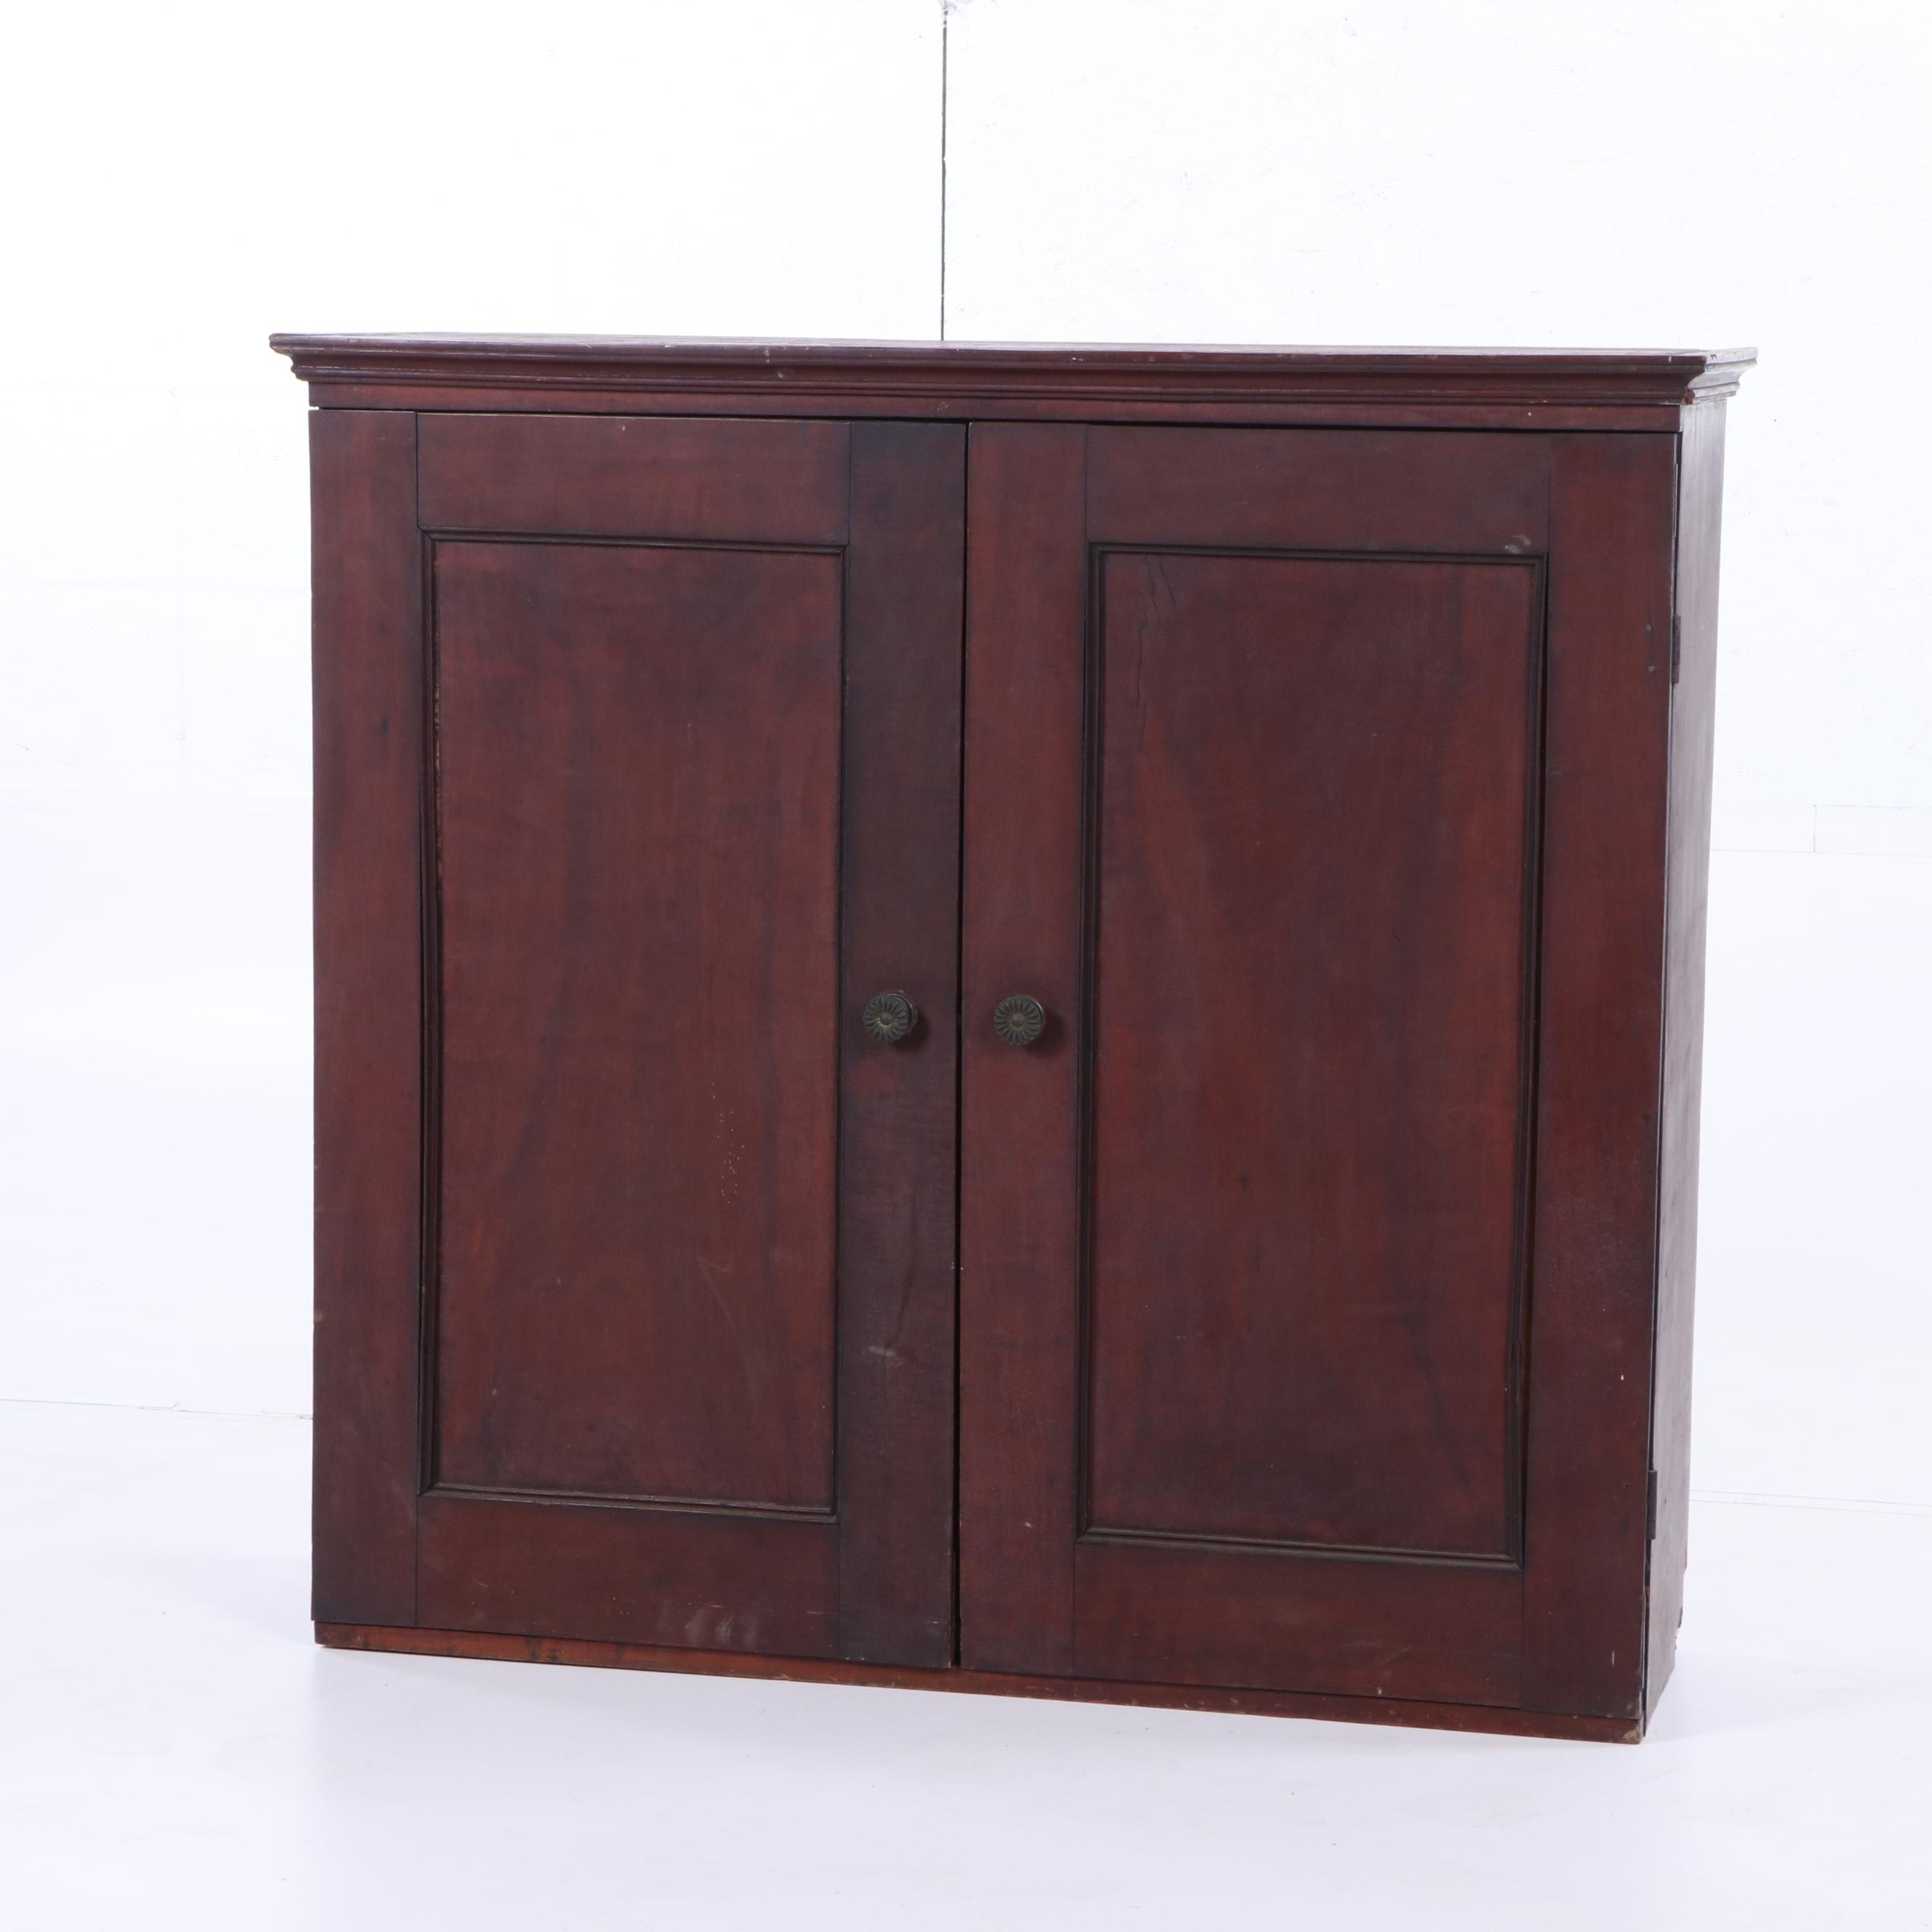 Mahogany Cupboard, Early 19th Century